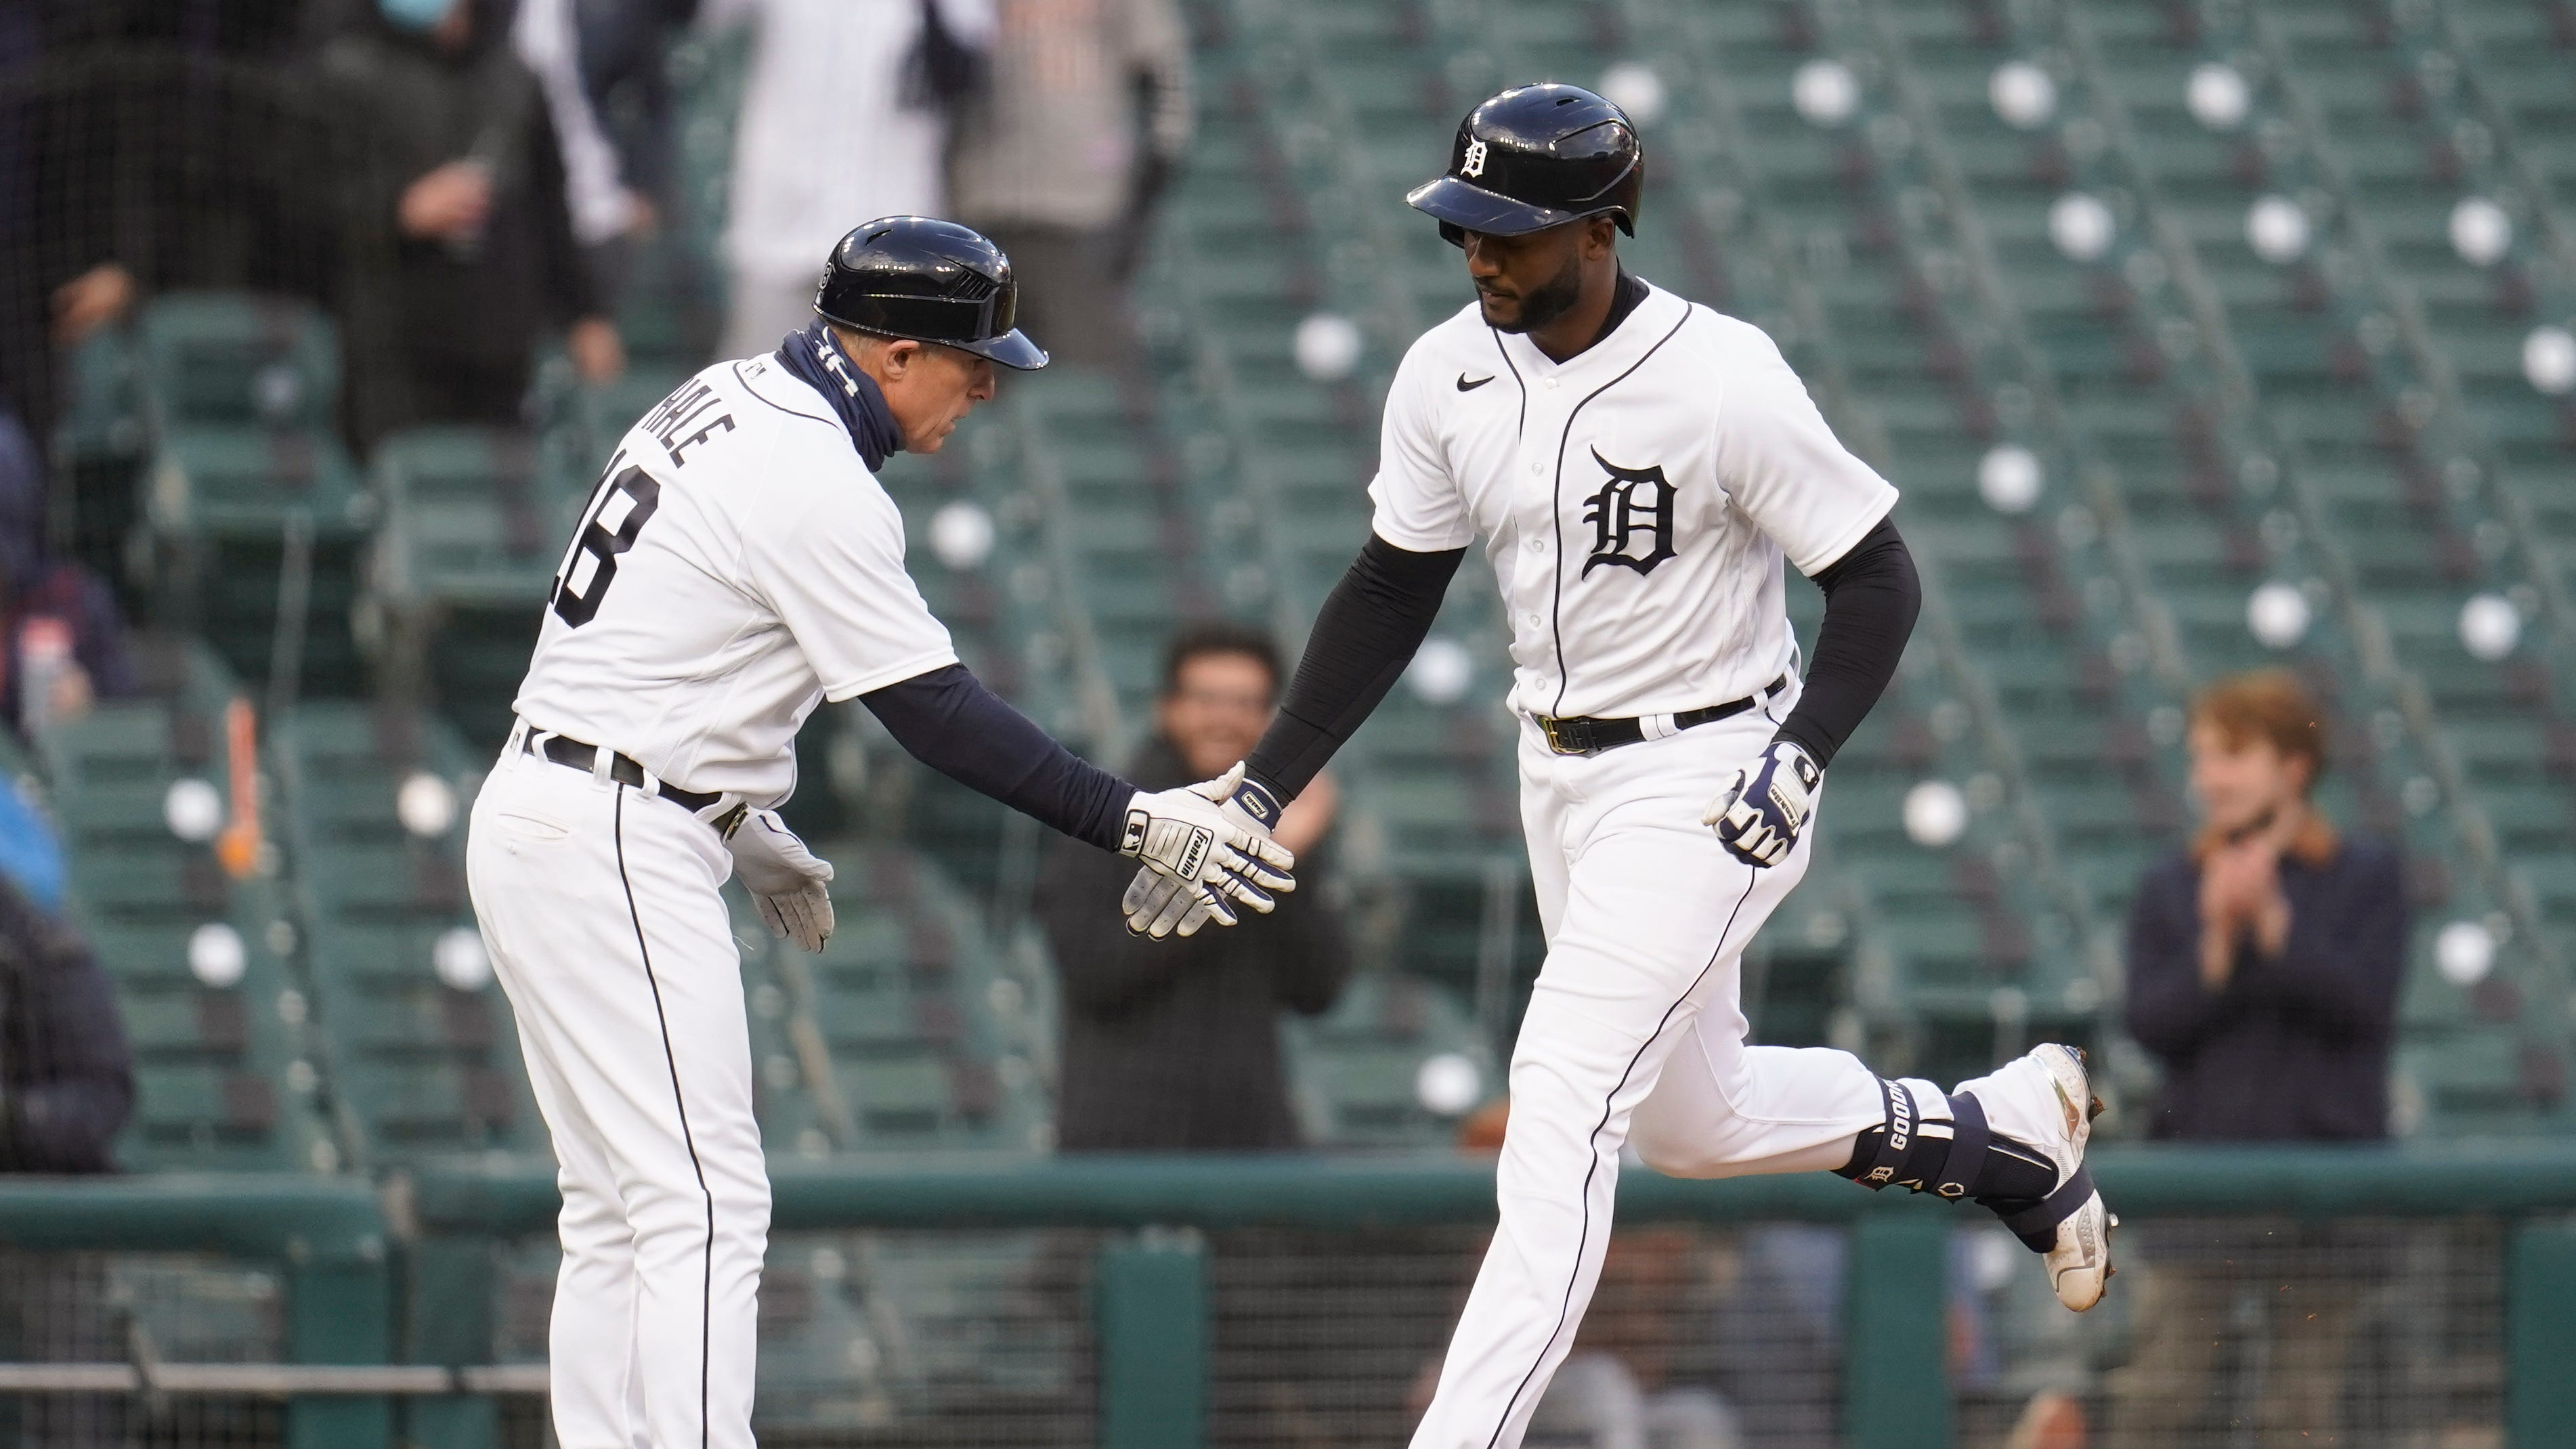 Detroit Tigers' Niko Goodrum celebrates his solo home run with third base coach Chip Hale (18) in the third inning against the Pittsburgh Pirates during the second game of a doubleheader baseball game in Detroit, Wednesday, April 21, 2021.